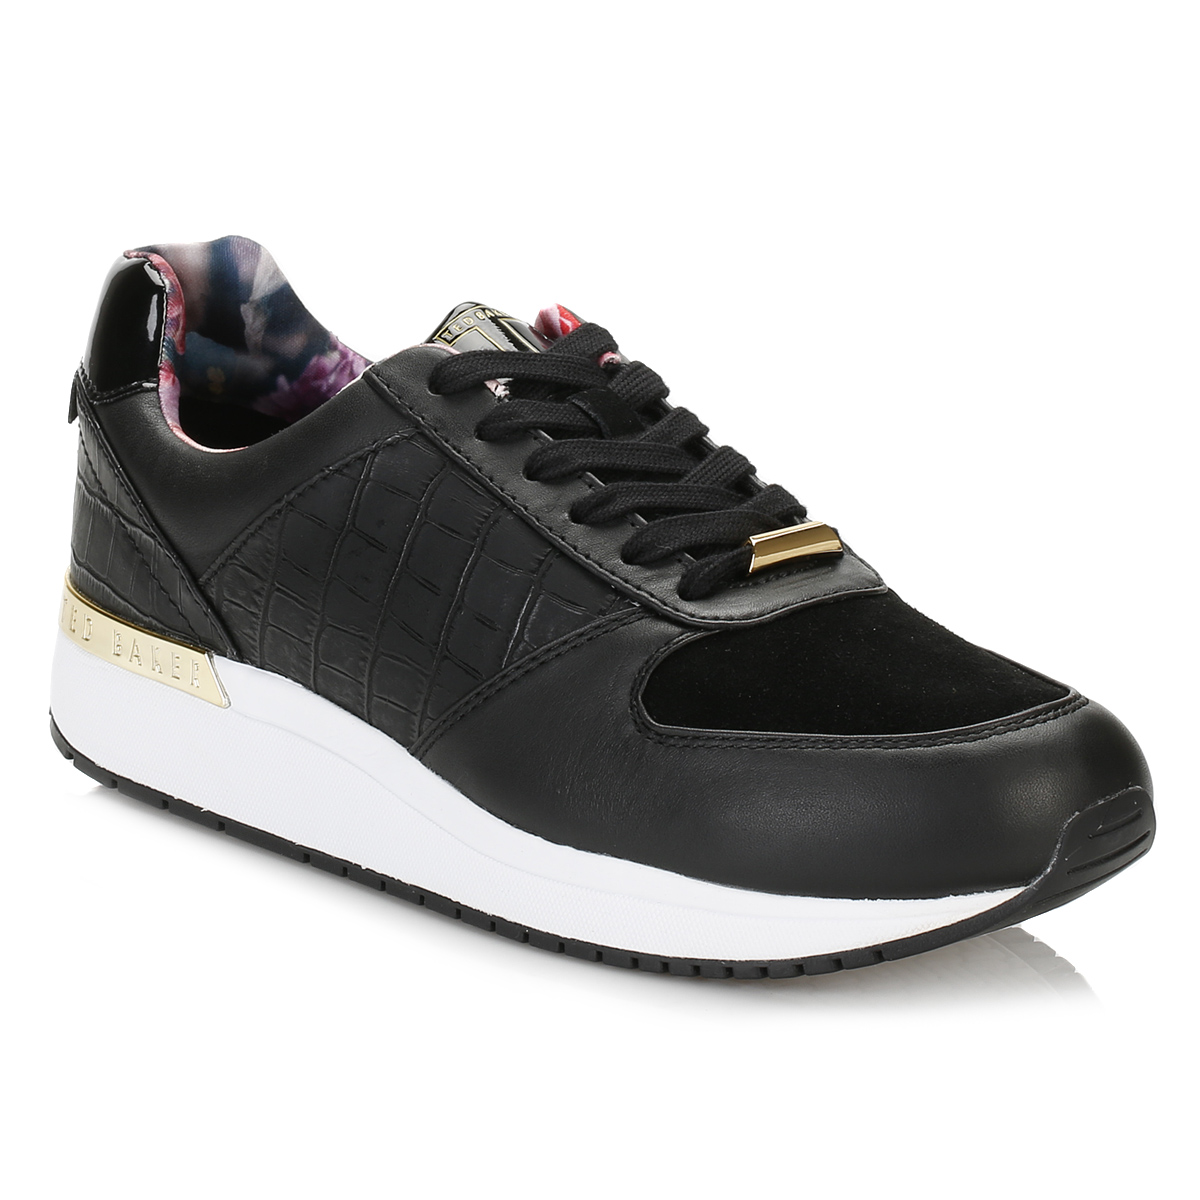 ted baker womens trainers black lwoire 3 lace up sport